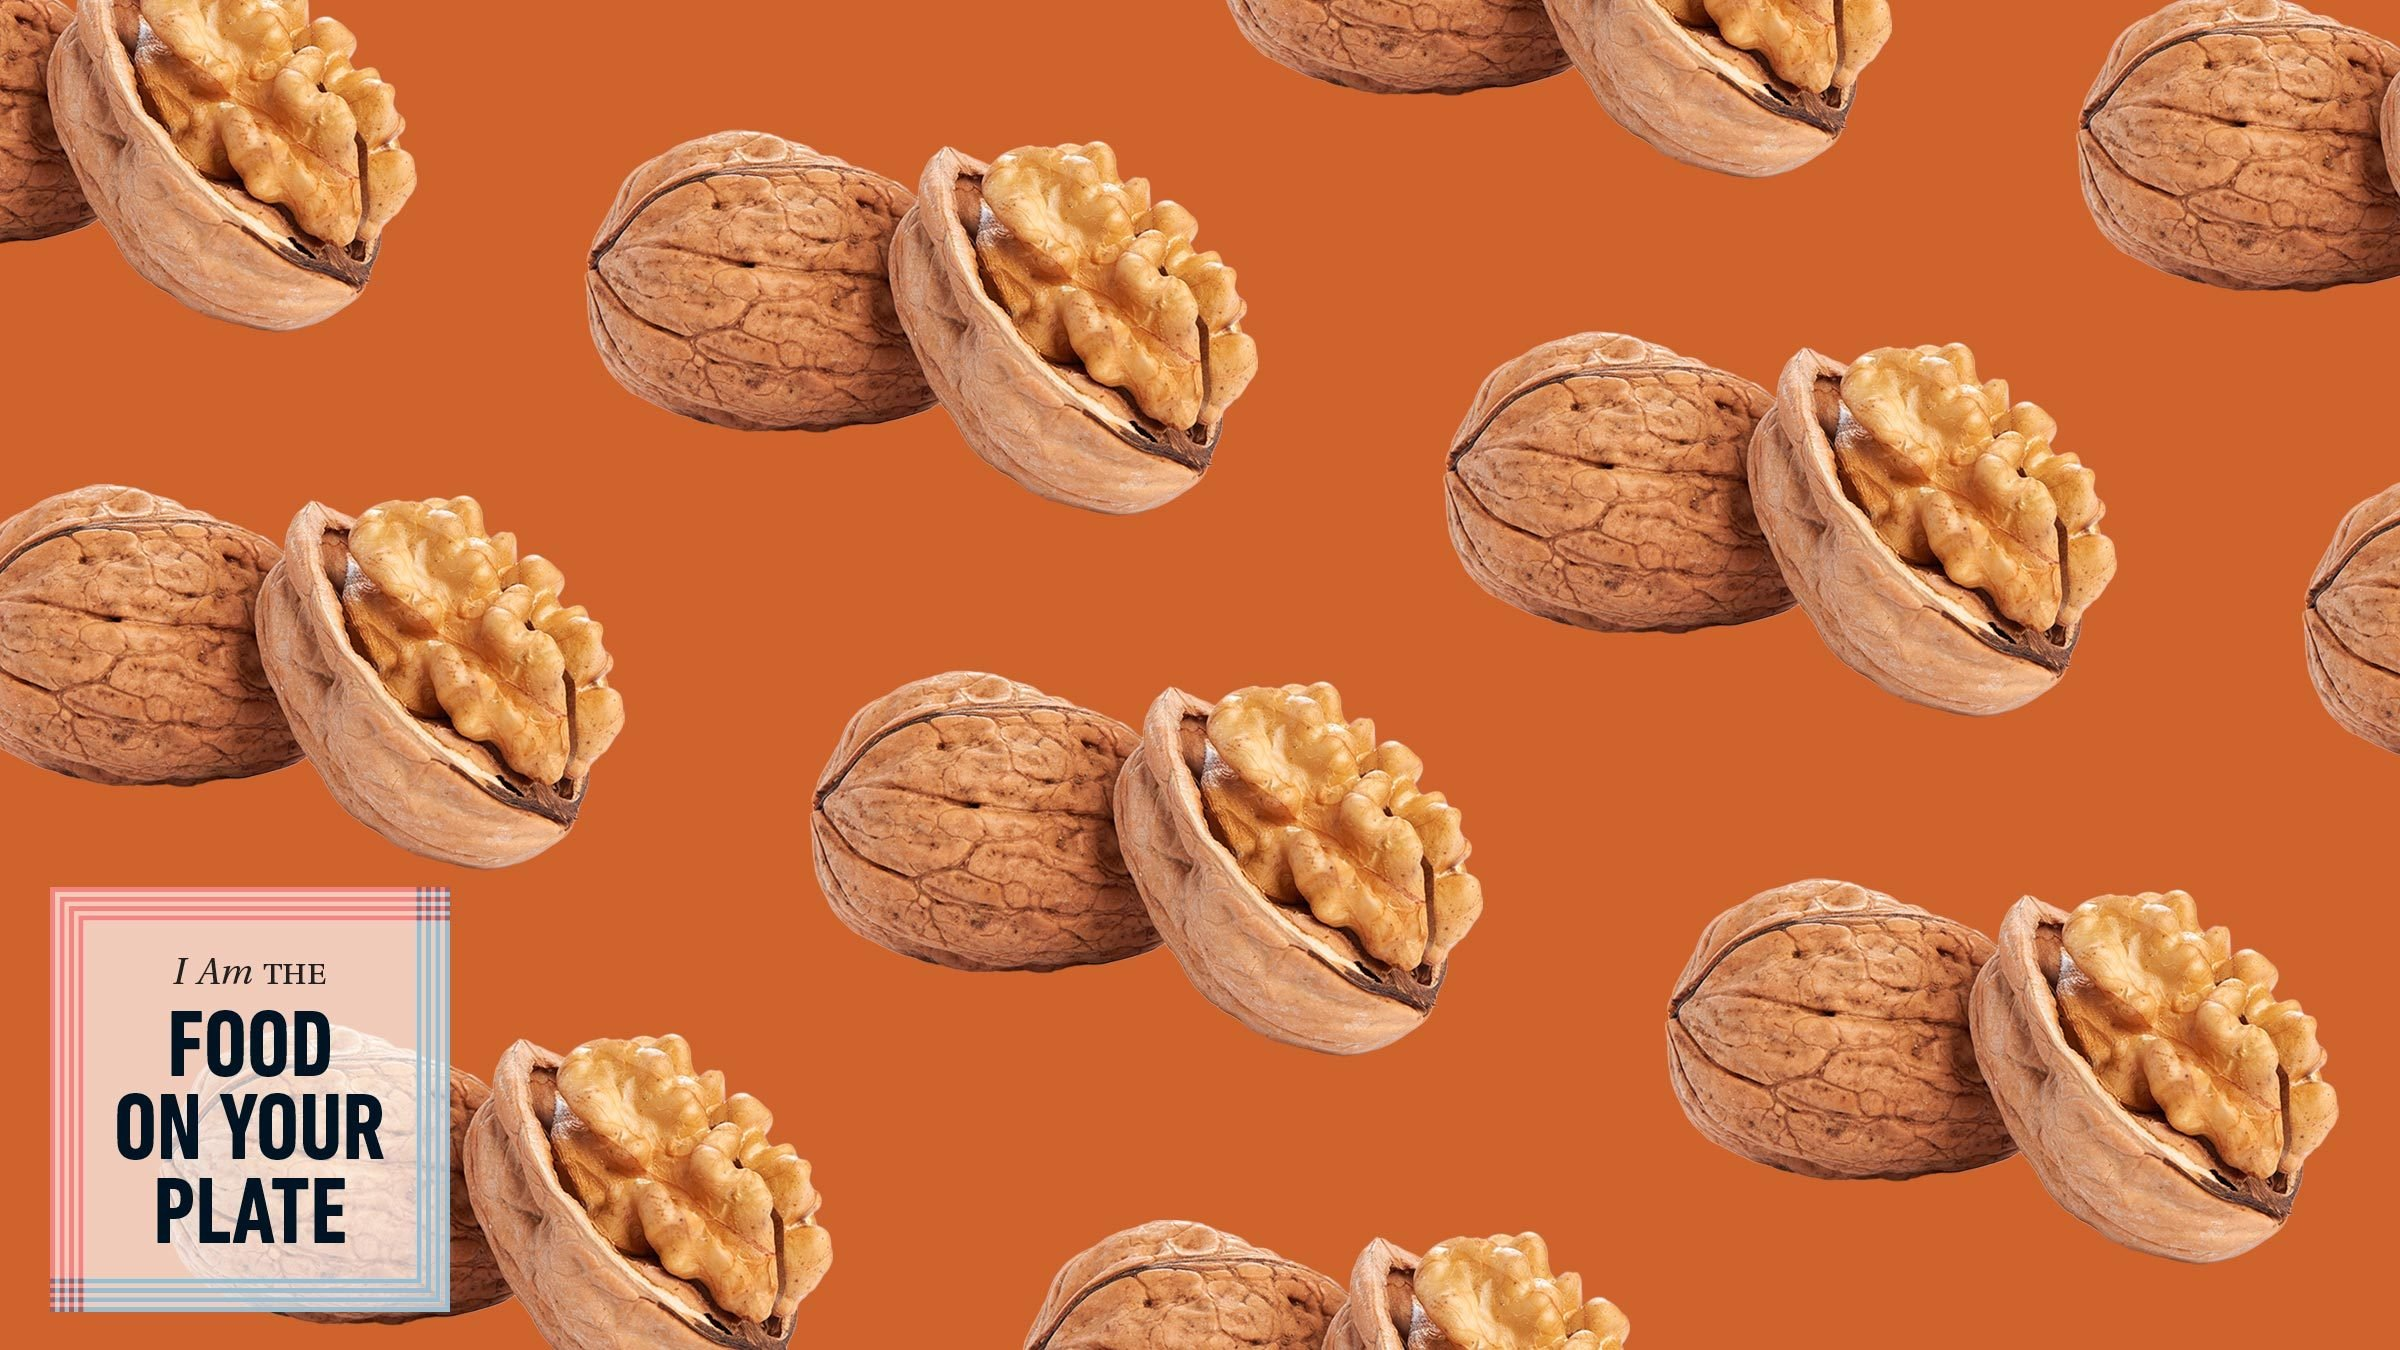 walnuts repeated in a pattern with the food on your plate logo